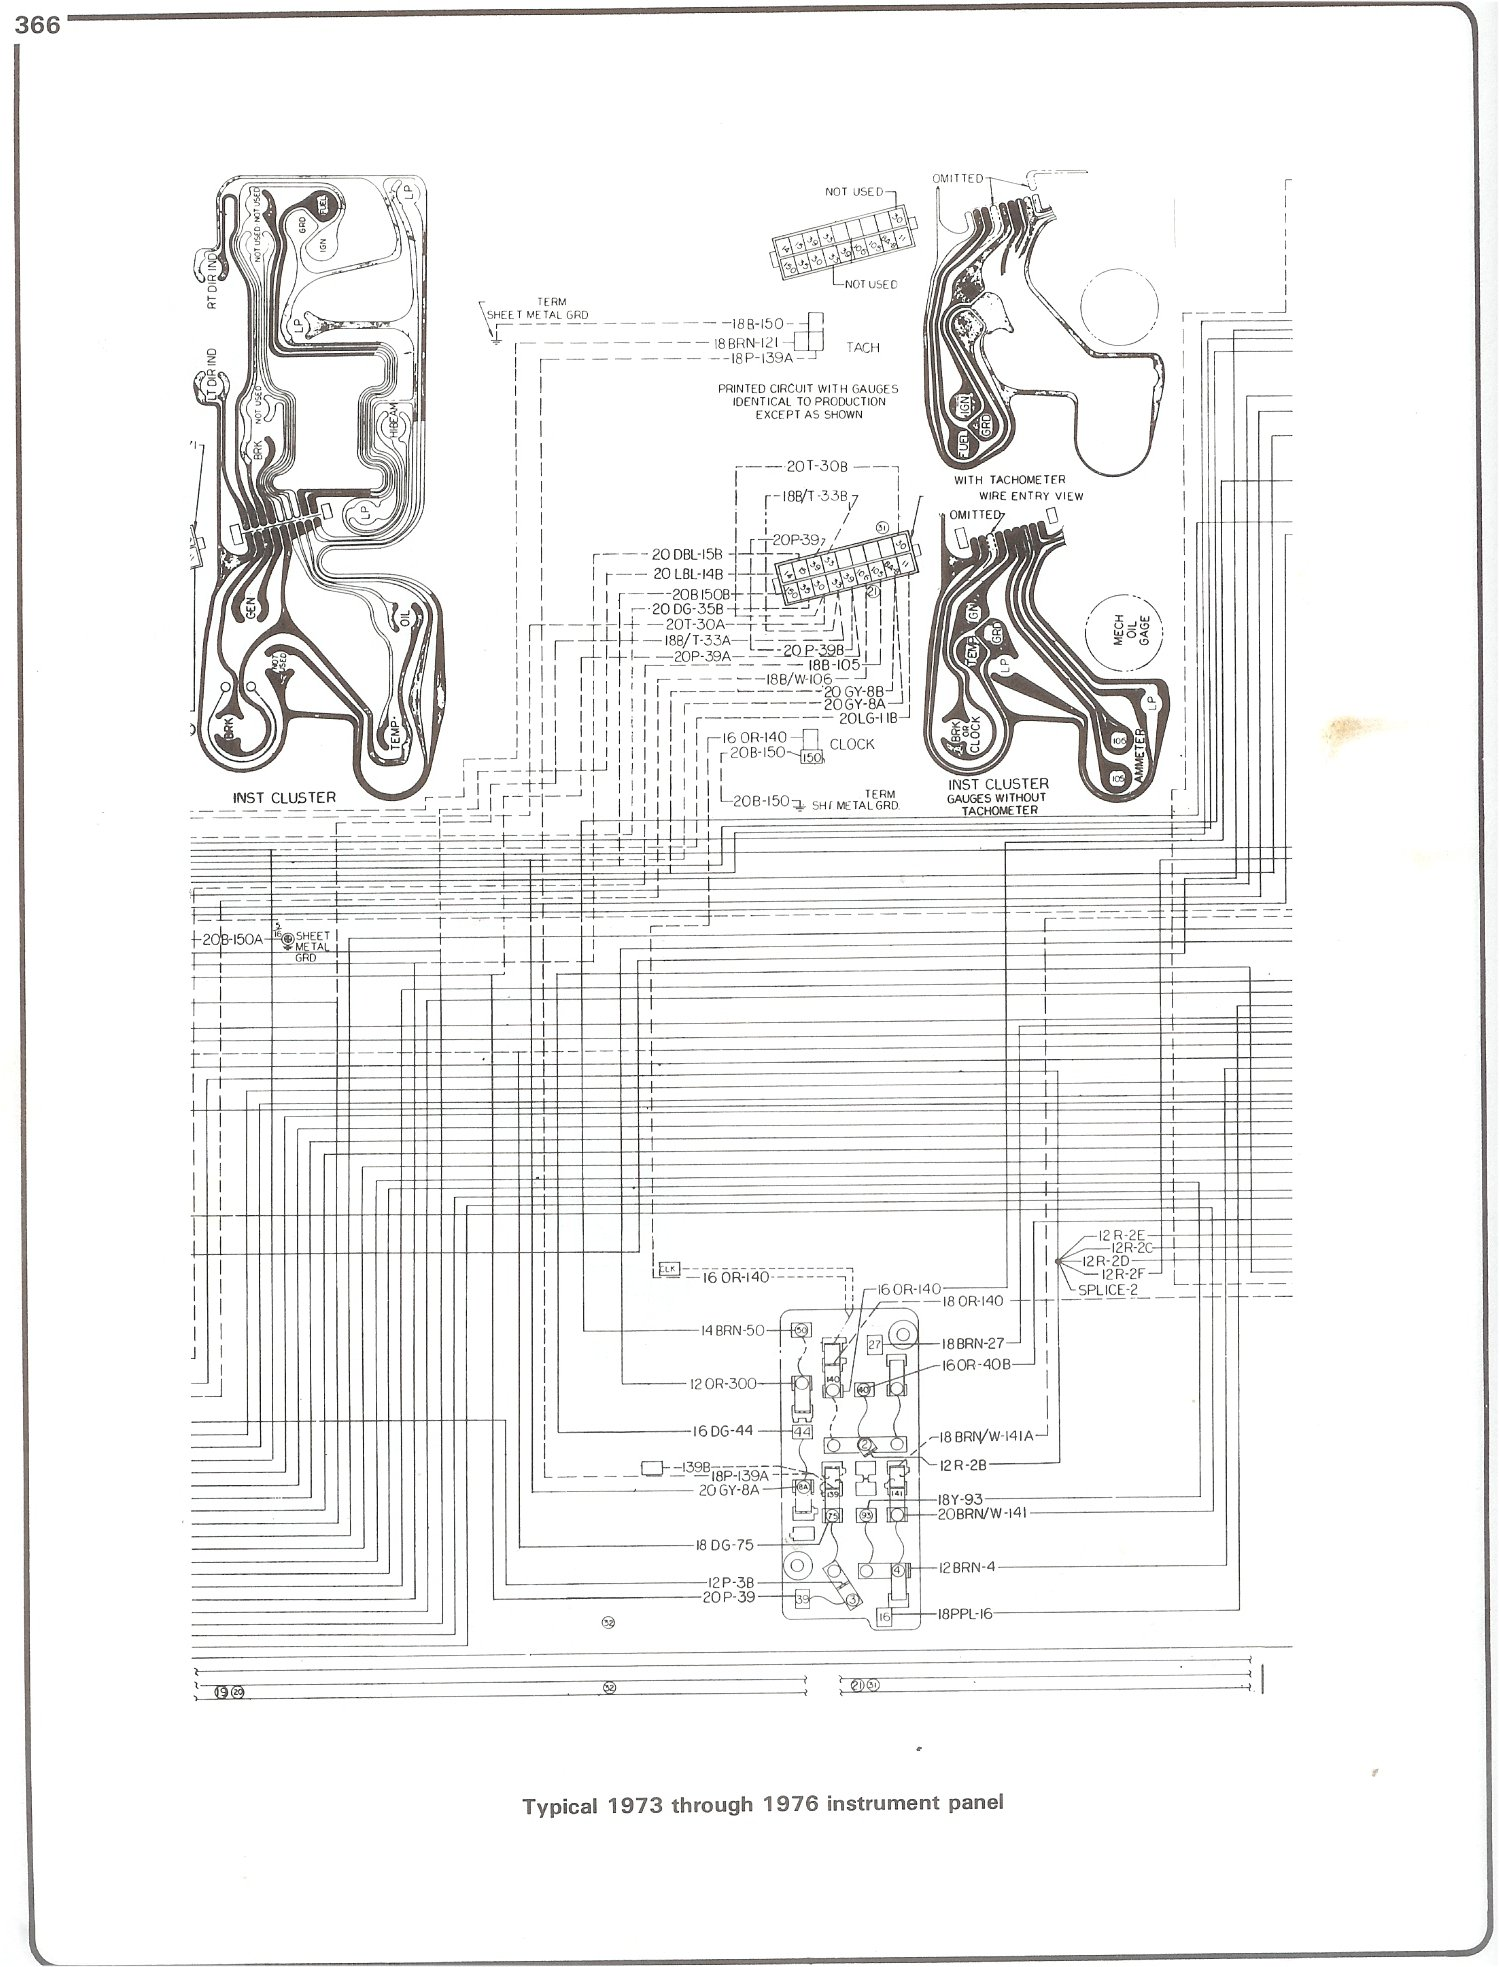 73 76_instrument complete 73 87 wiring diagrams Delco Alternator Wiring Diagram at gsmx.co